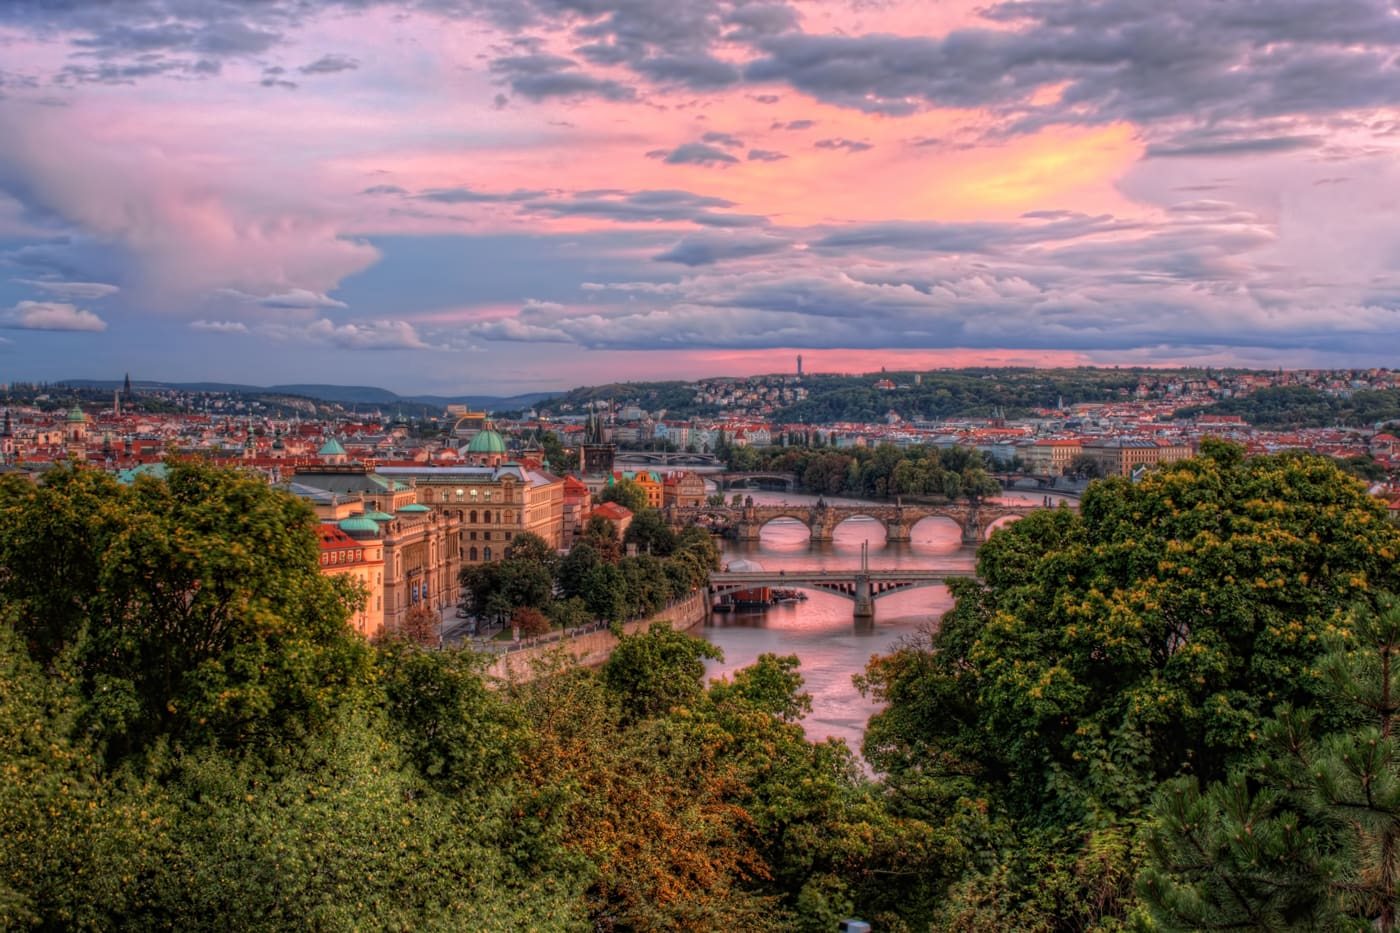 Prague seen from Letna Park. The Bridges on Vltava in pink Sunset light. HDR Photo from Czech Republic